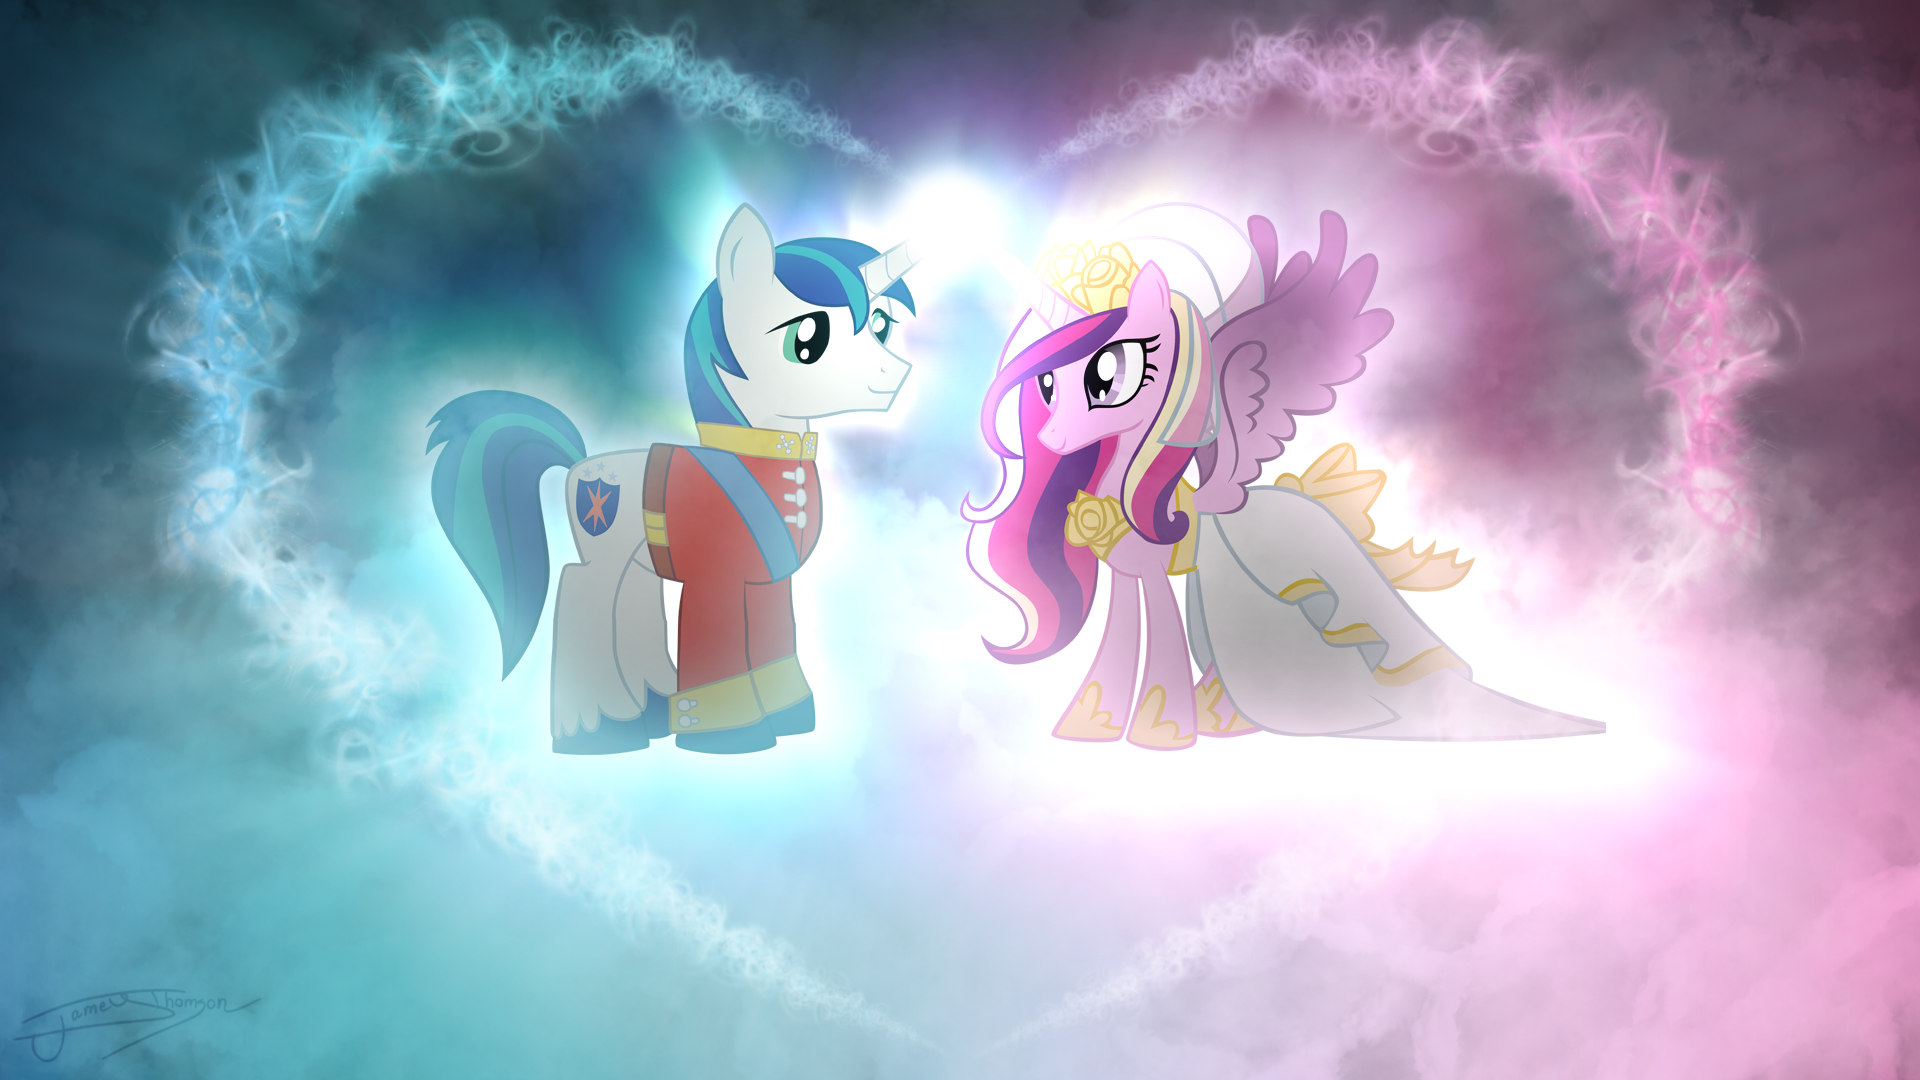 Love is In Bloom by iBringThaZelc and Jamey4